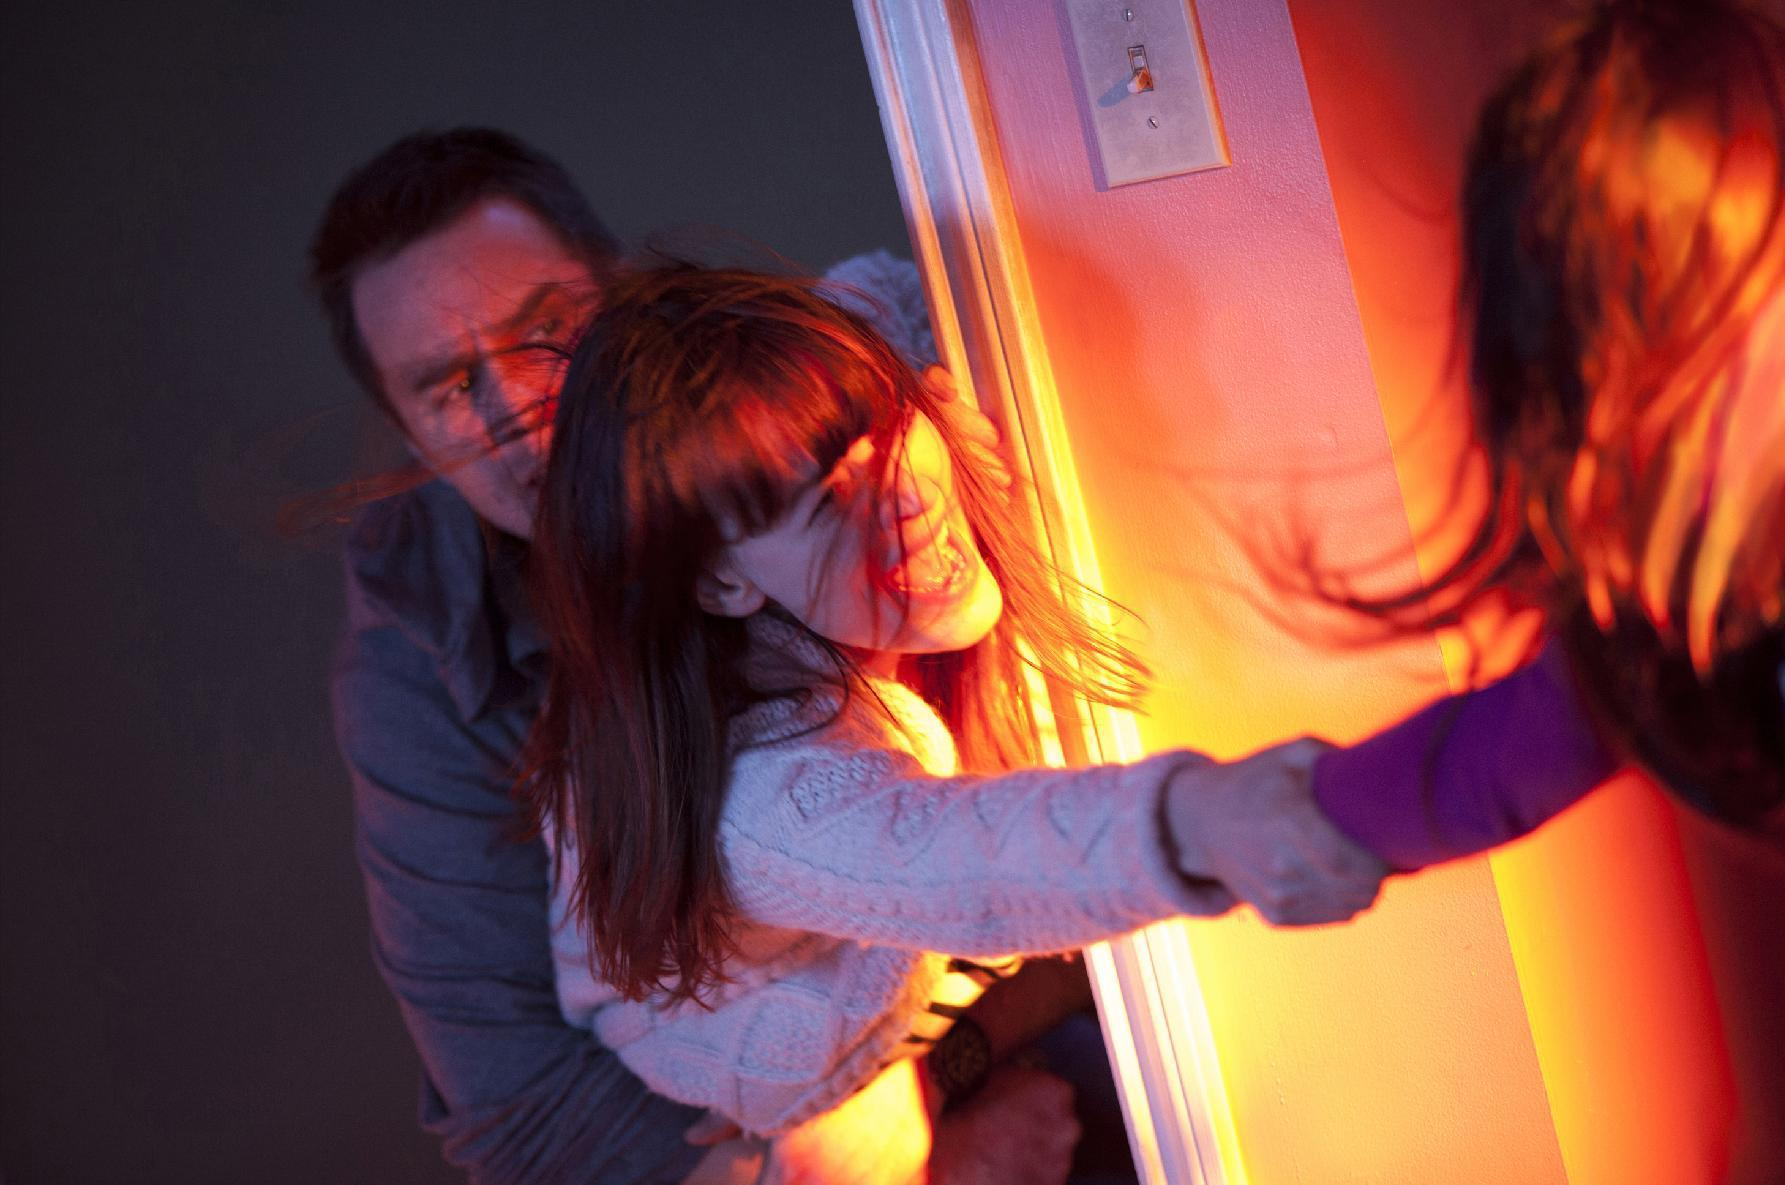 Review: 'Poltergeist' solid remake of haunted house classic